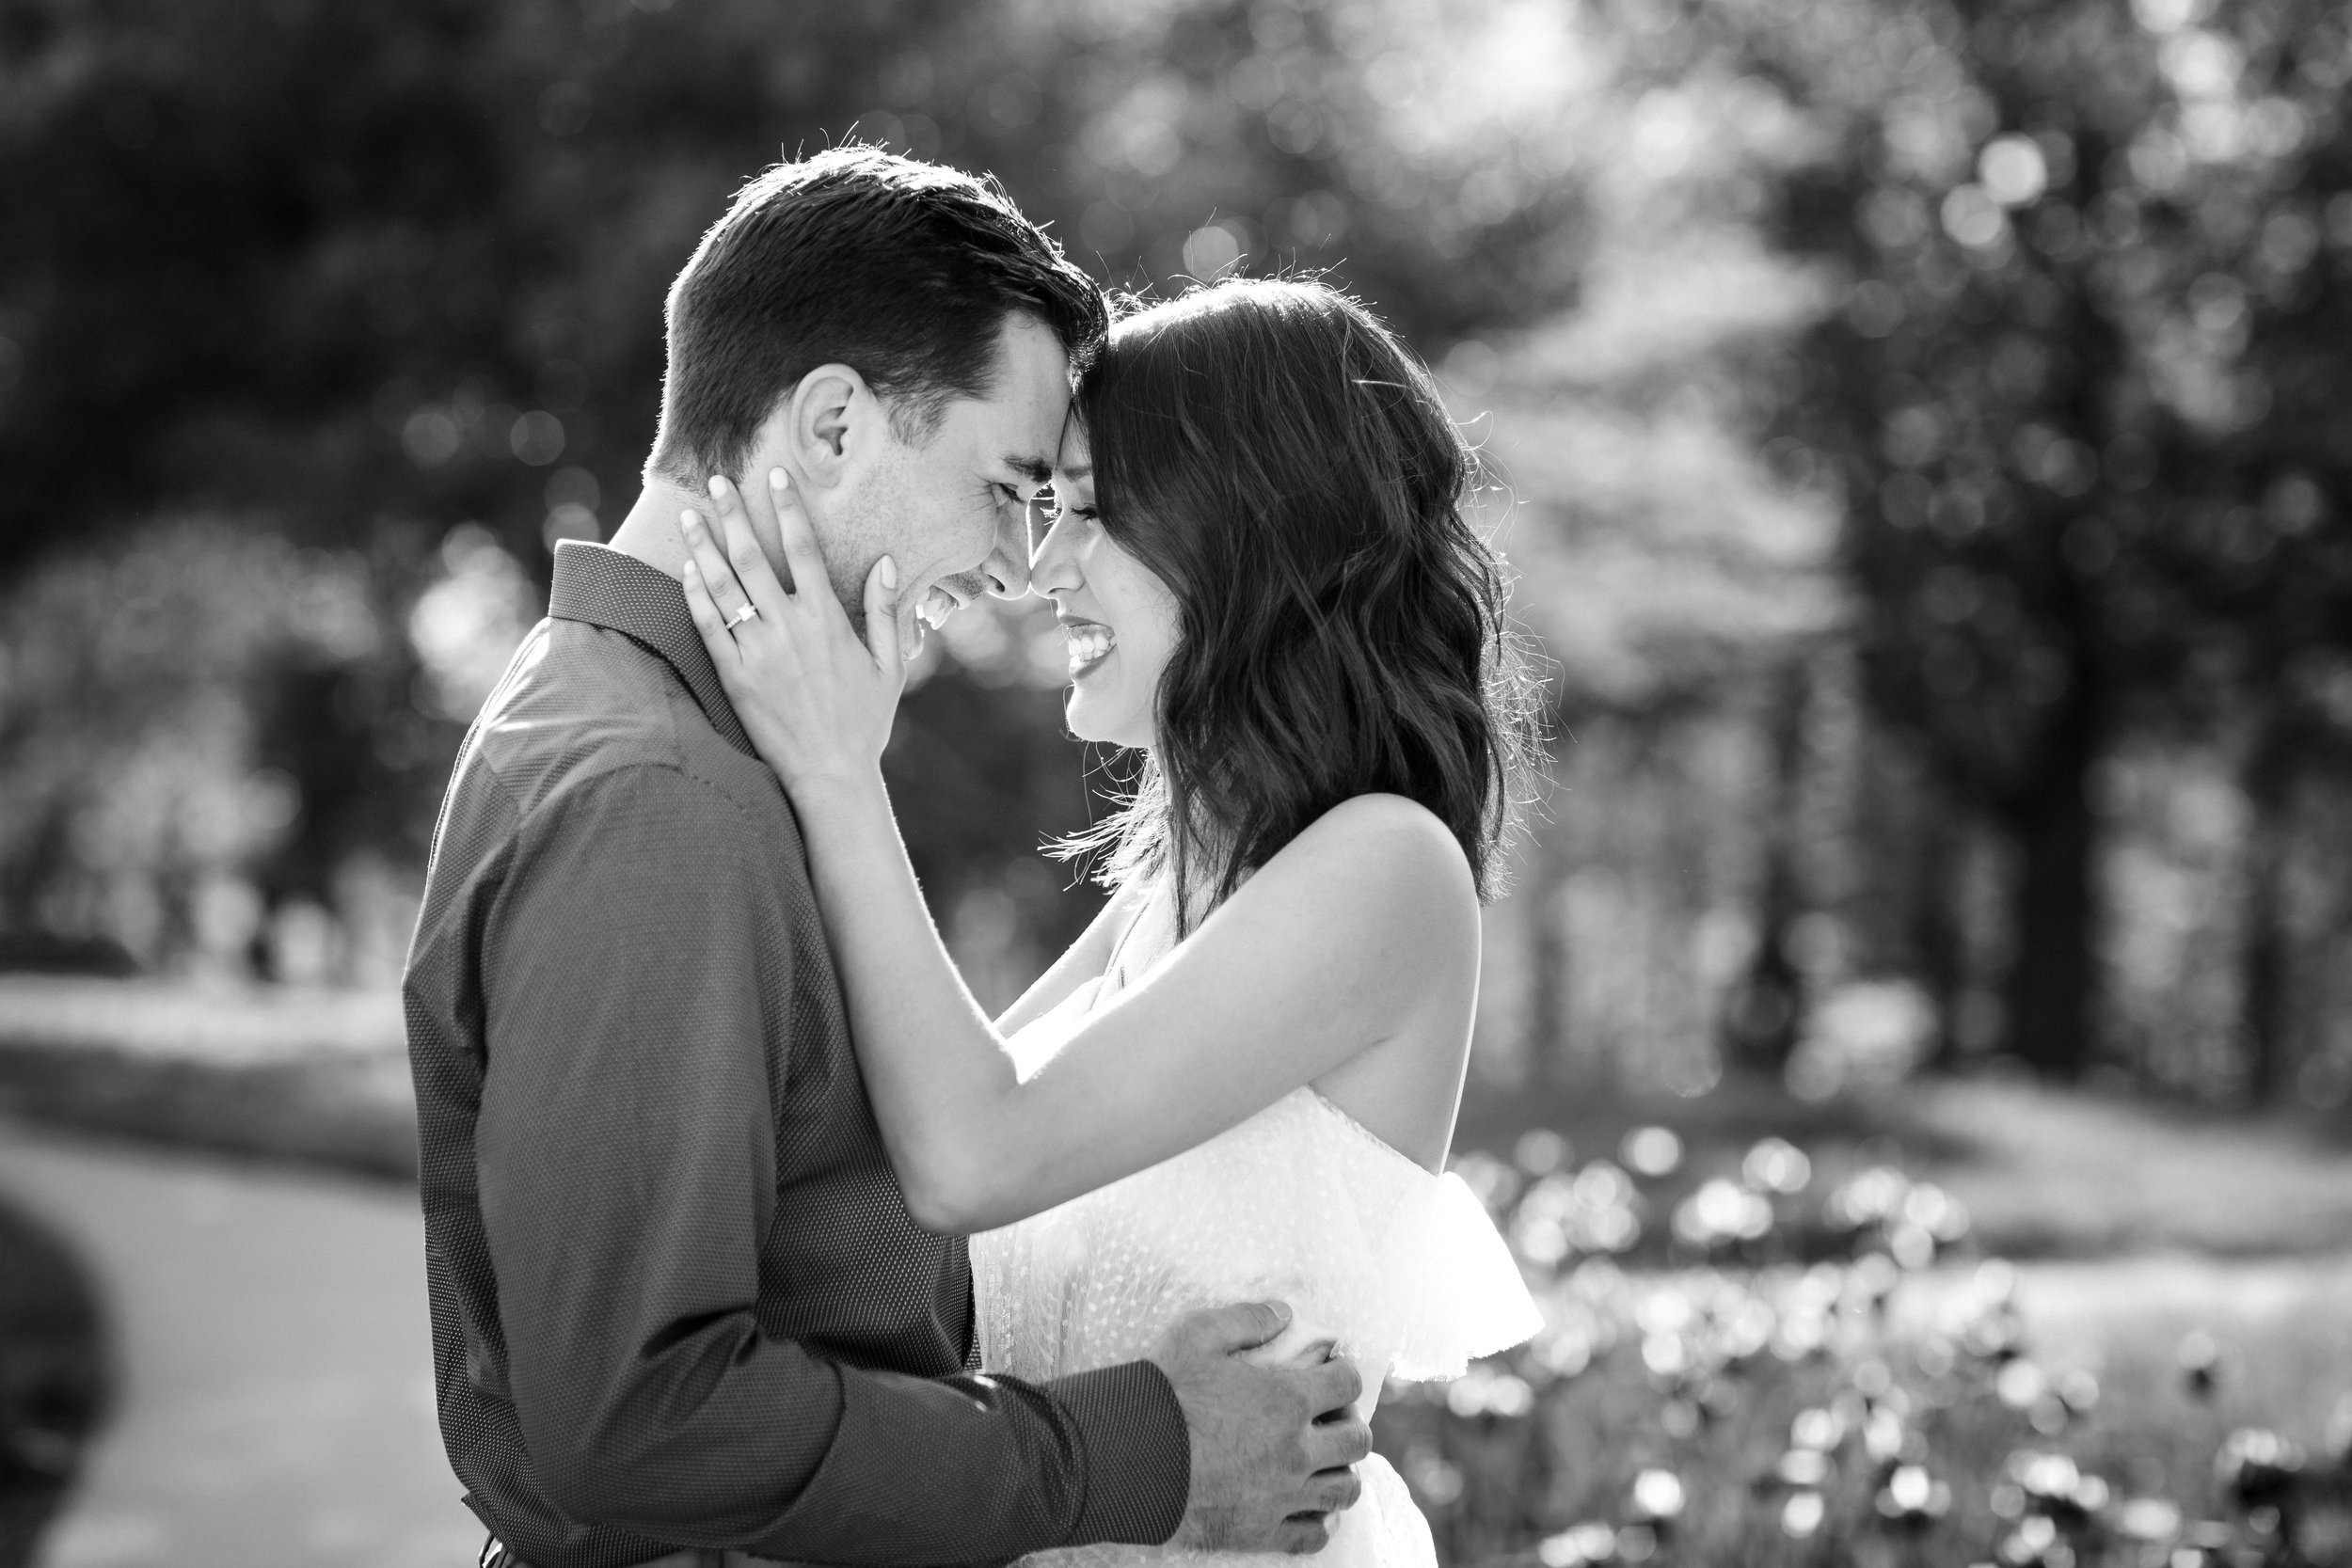 Forest Park Engagement Photography Erin Evangeline Chicago Photographer